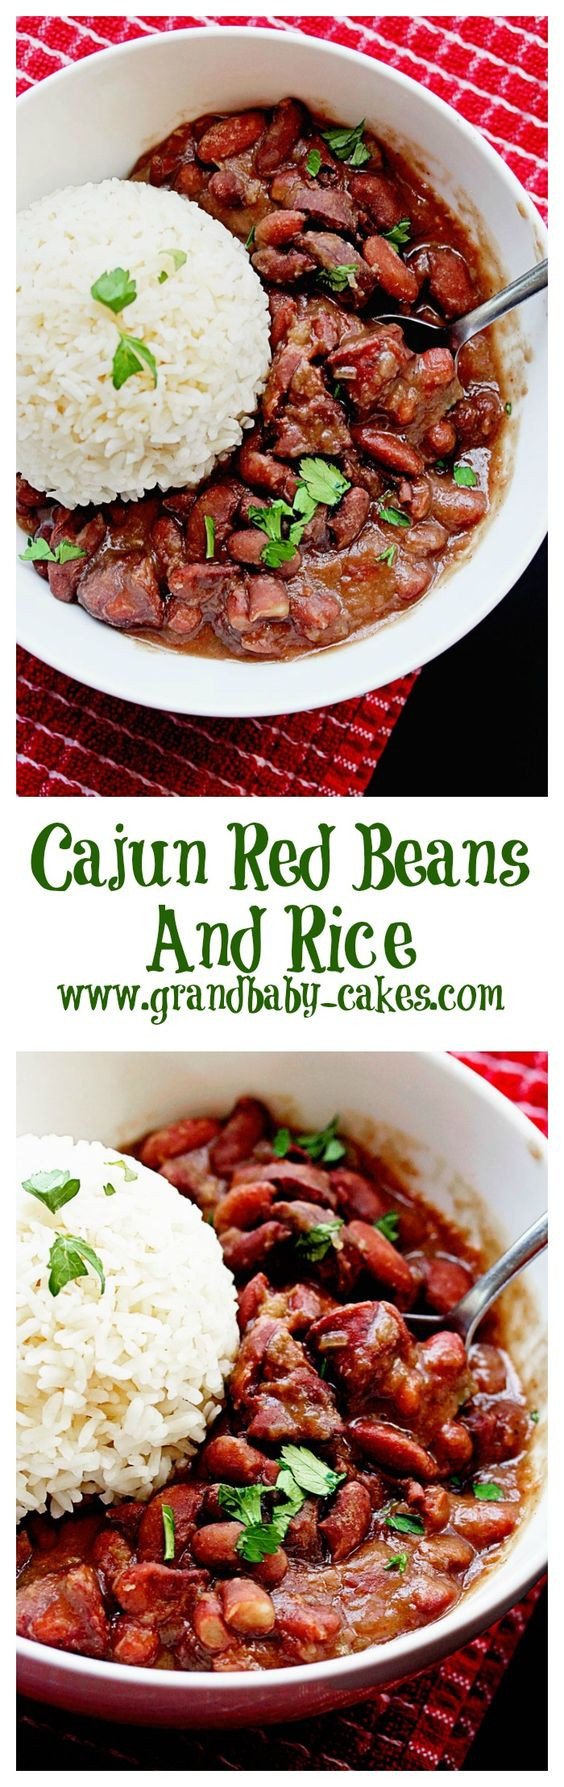 Cajun Red Beans And Rice  Cajun Red Beans and Rice Recipe